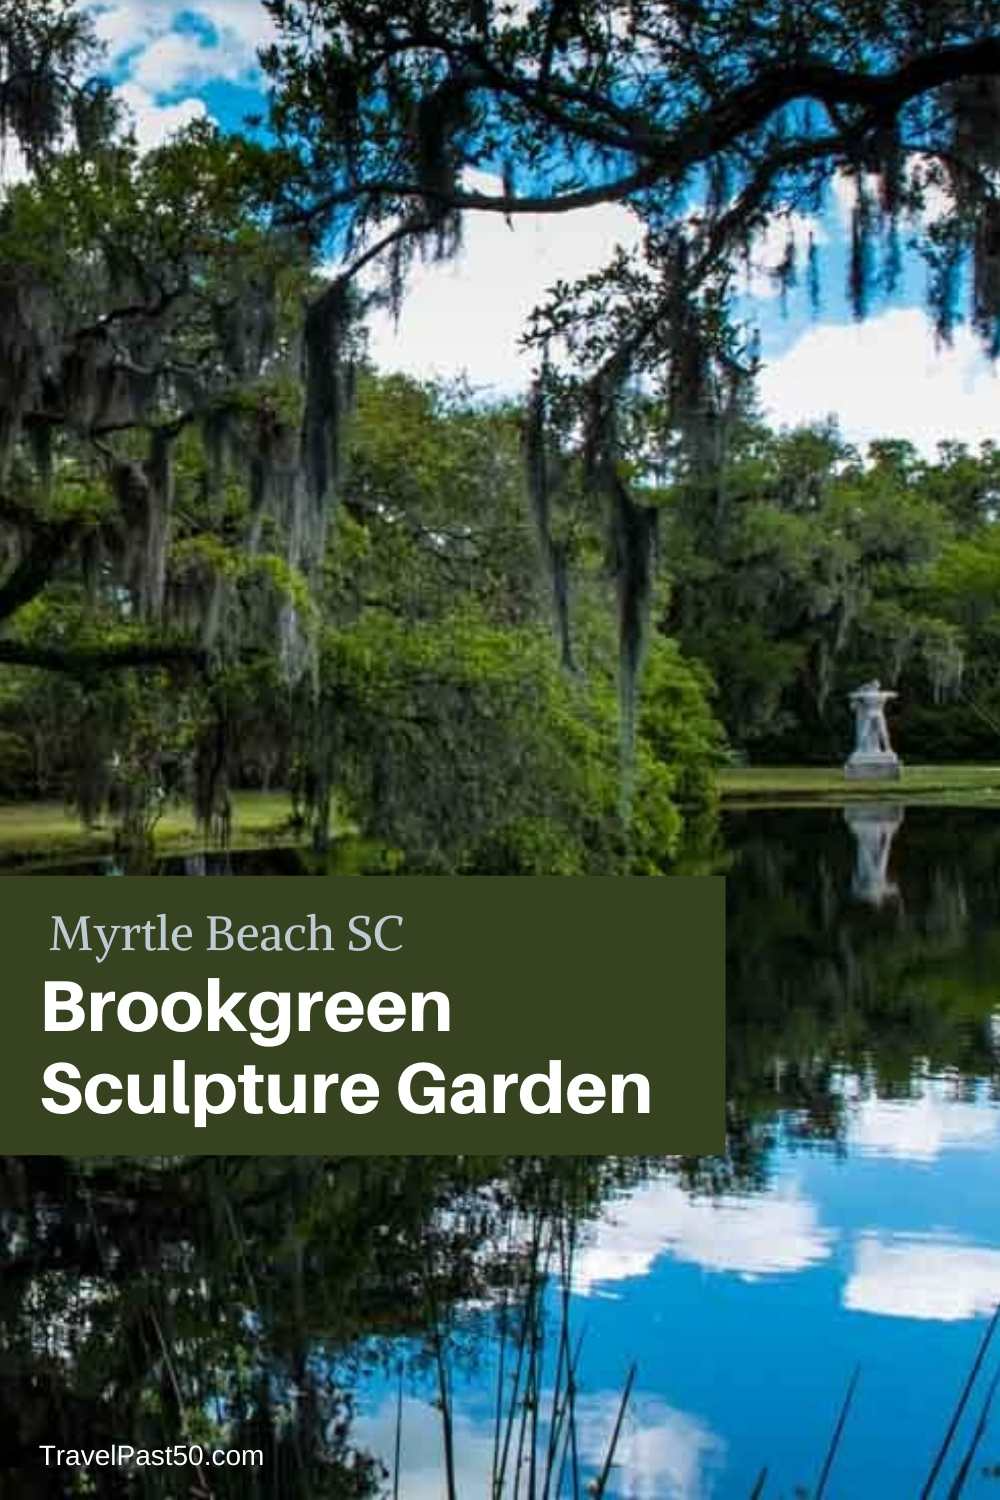 601456eb2a3f5ec772a490834b8c038a - Botanical Gardens In Myrtle Beach South Carolina